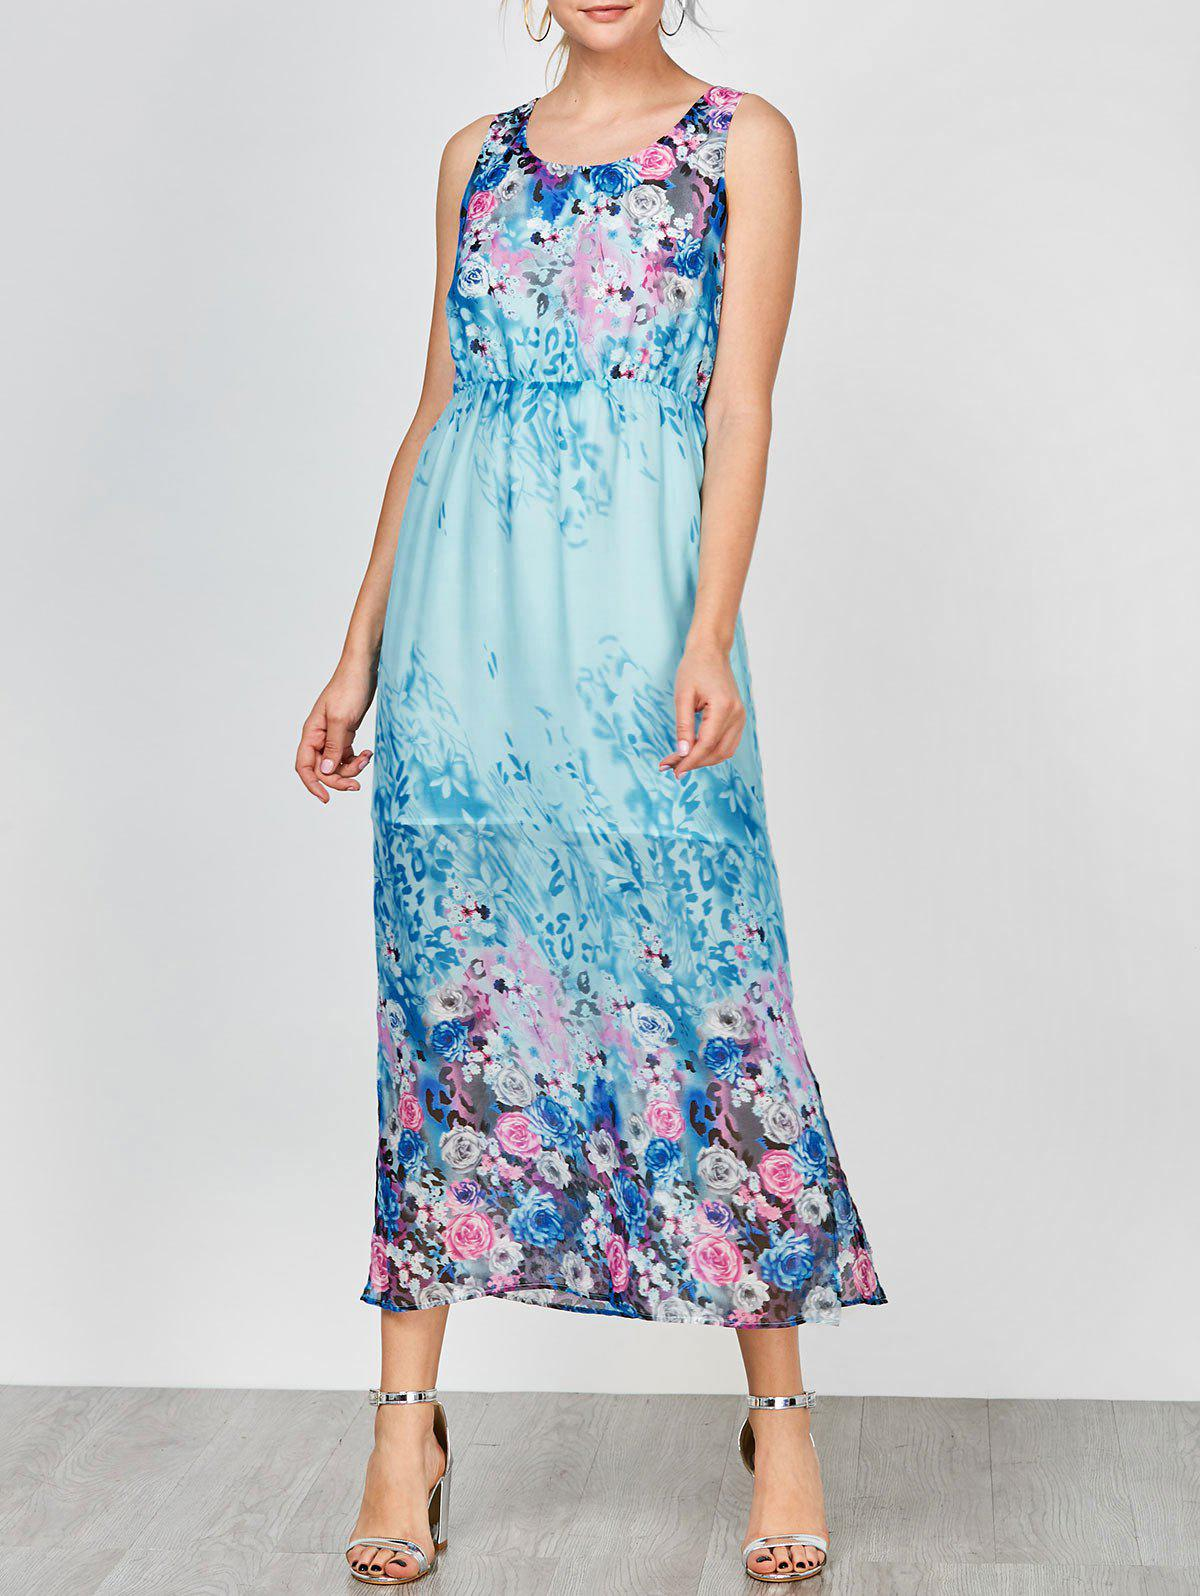 Floral Sleeveless Maxi Party Dress - BLUE L